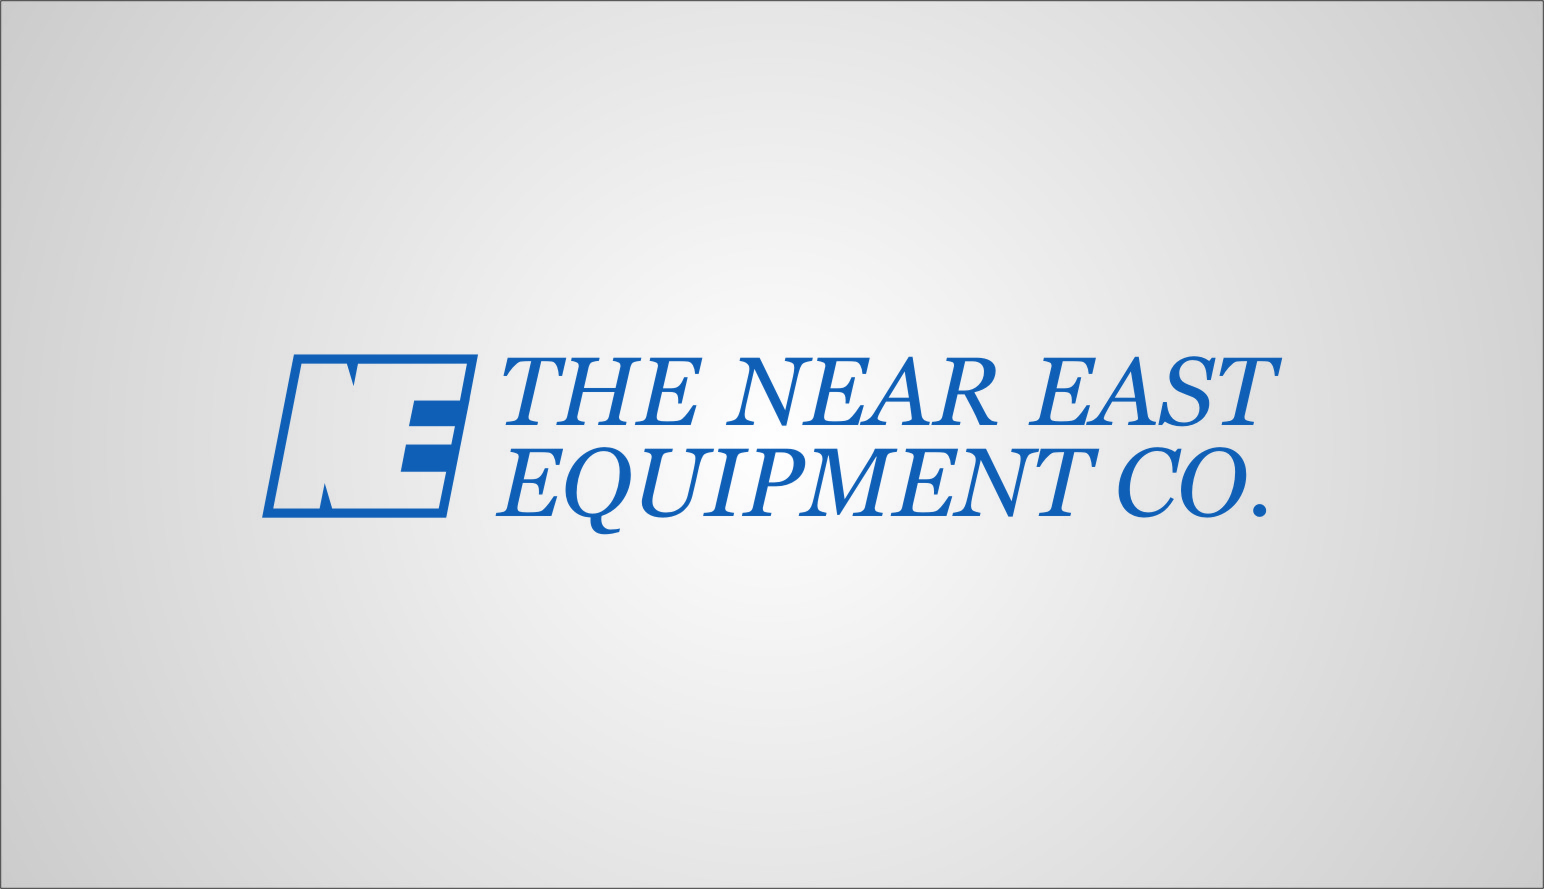 Logo Design by Ngepet_art - Entry No. 26 in the Logo Design Contest Imaginative Logo Design for The Near East Equipment Co..